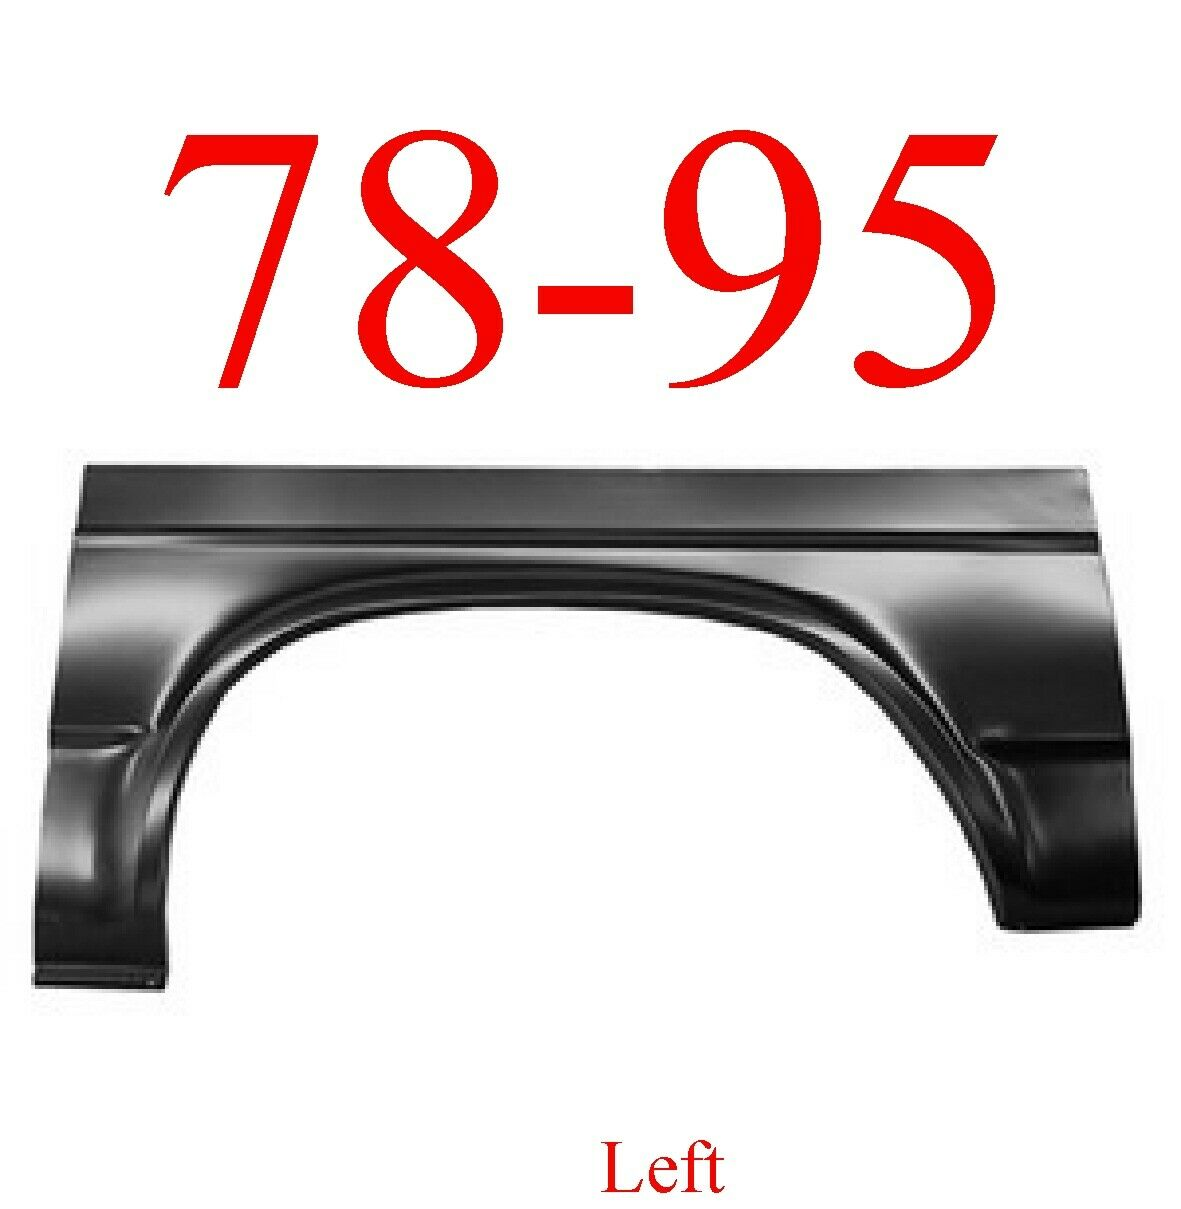 78-95 Chevy Van Left Rear Arch Panel